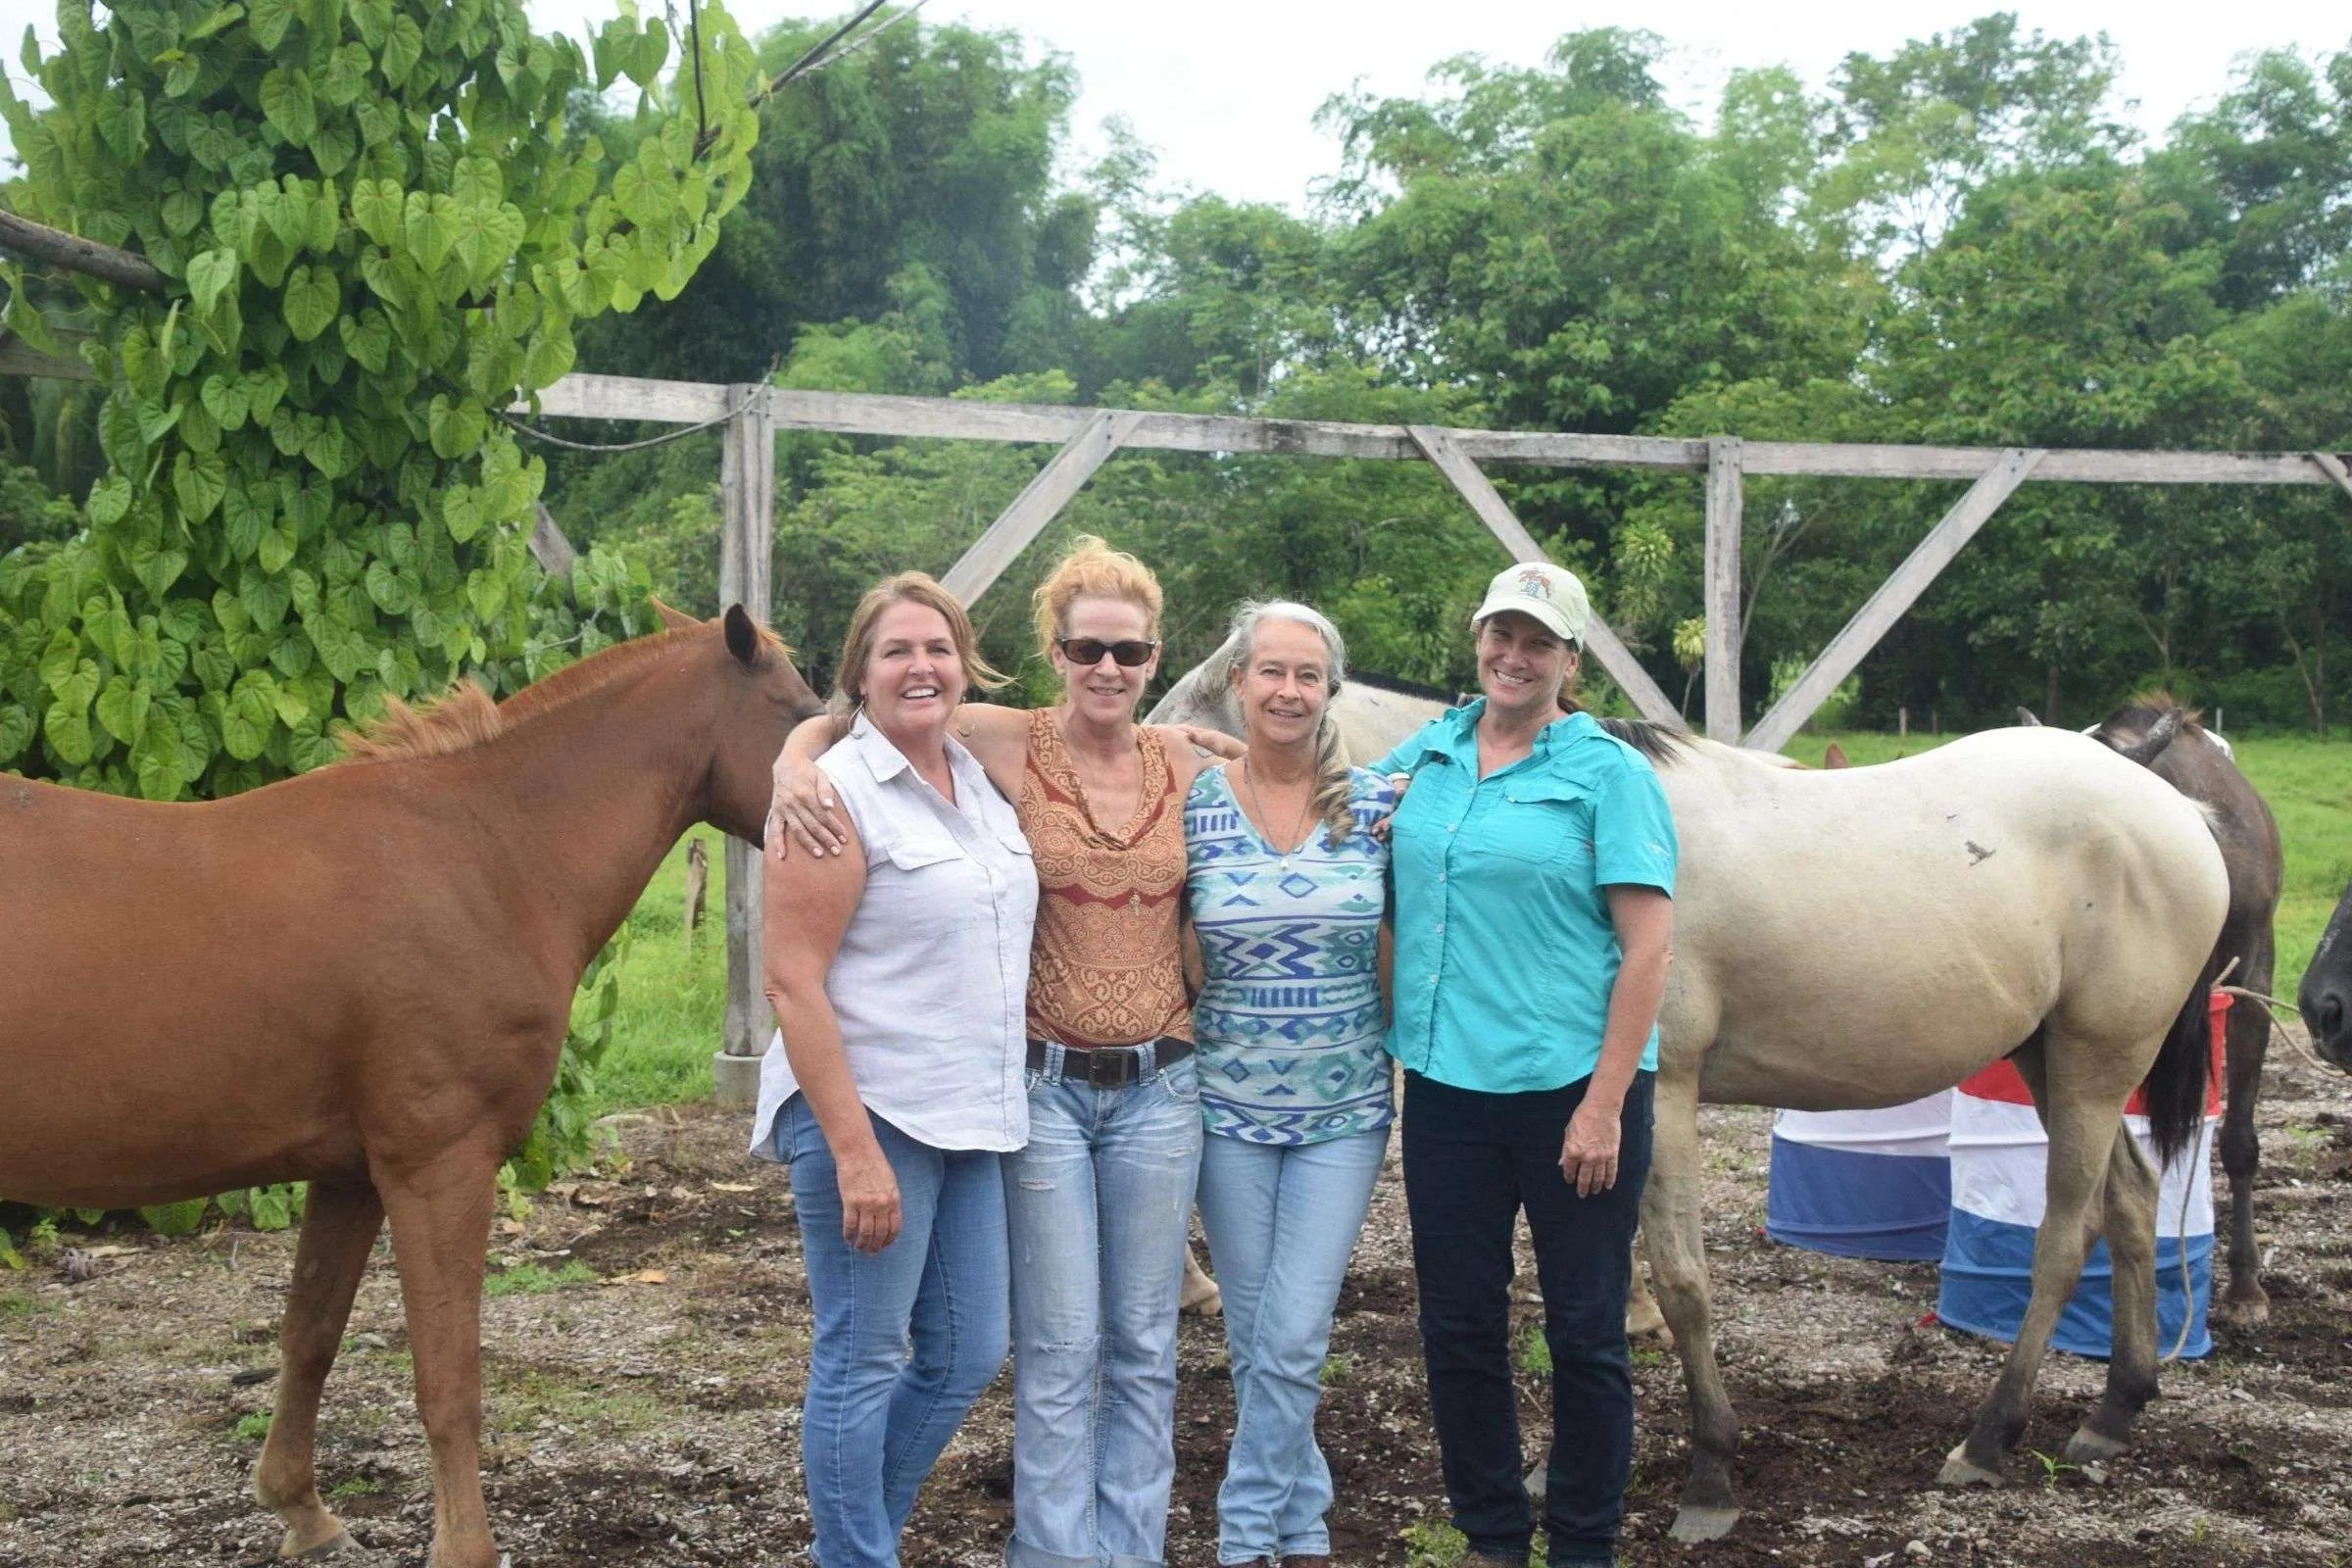 Chicas y Caballos Horses and Girls